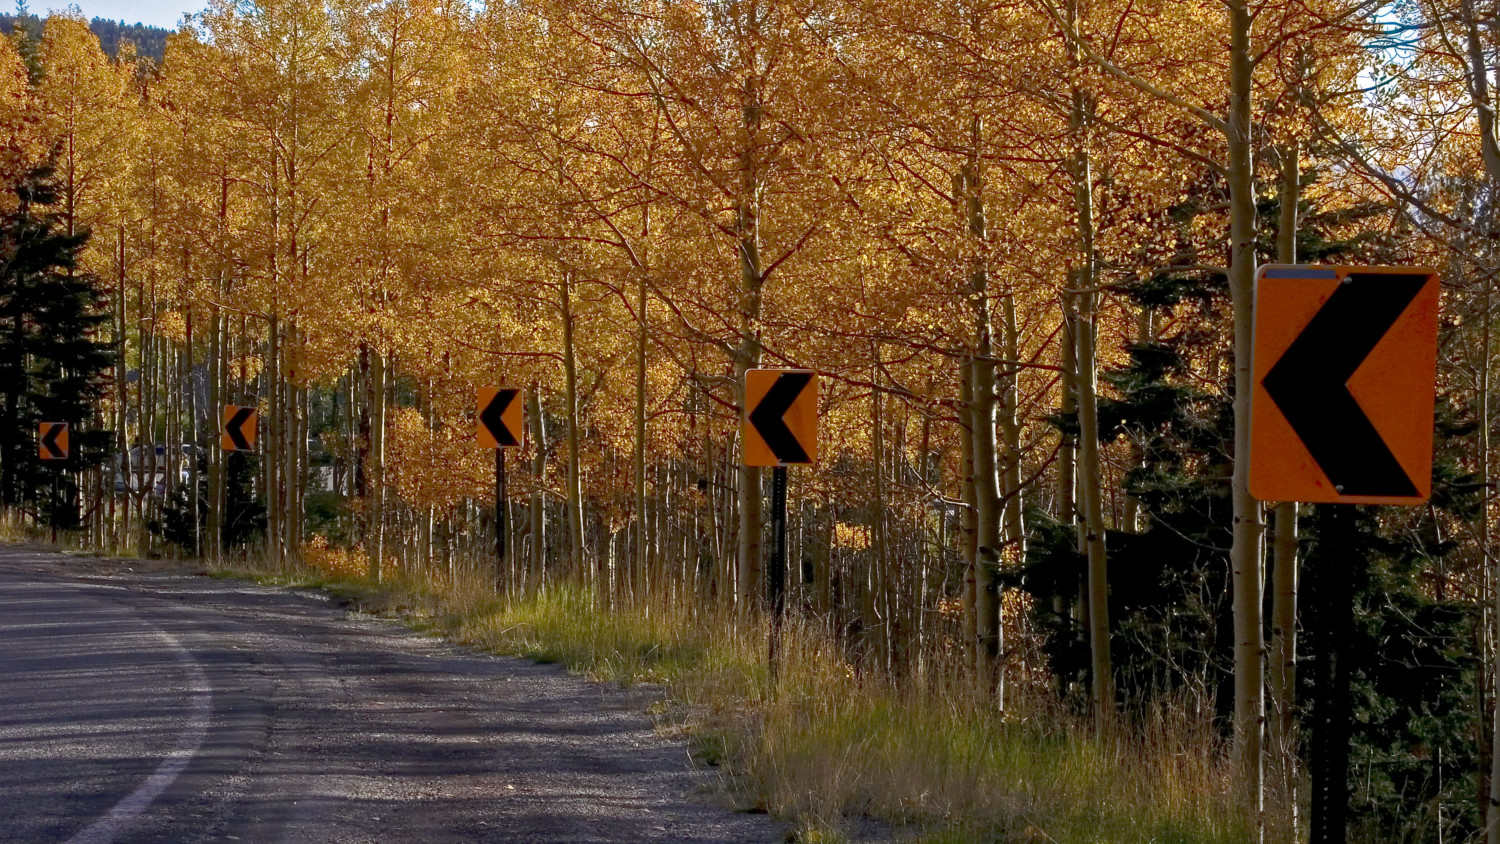 Aspens outside Santa Fe, New Mexico, October 2007